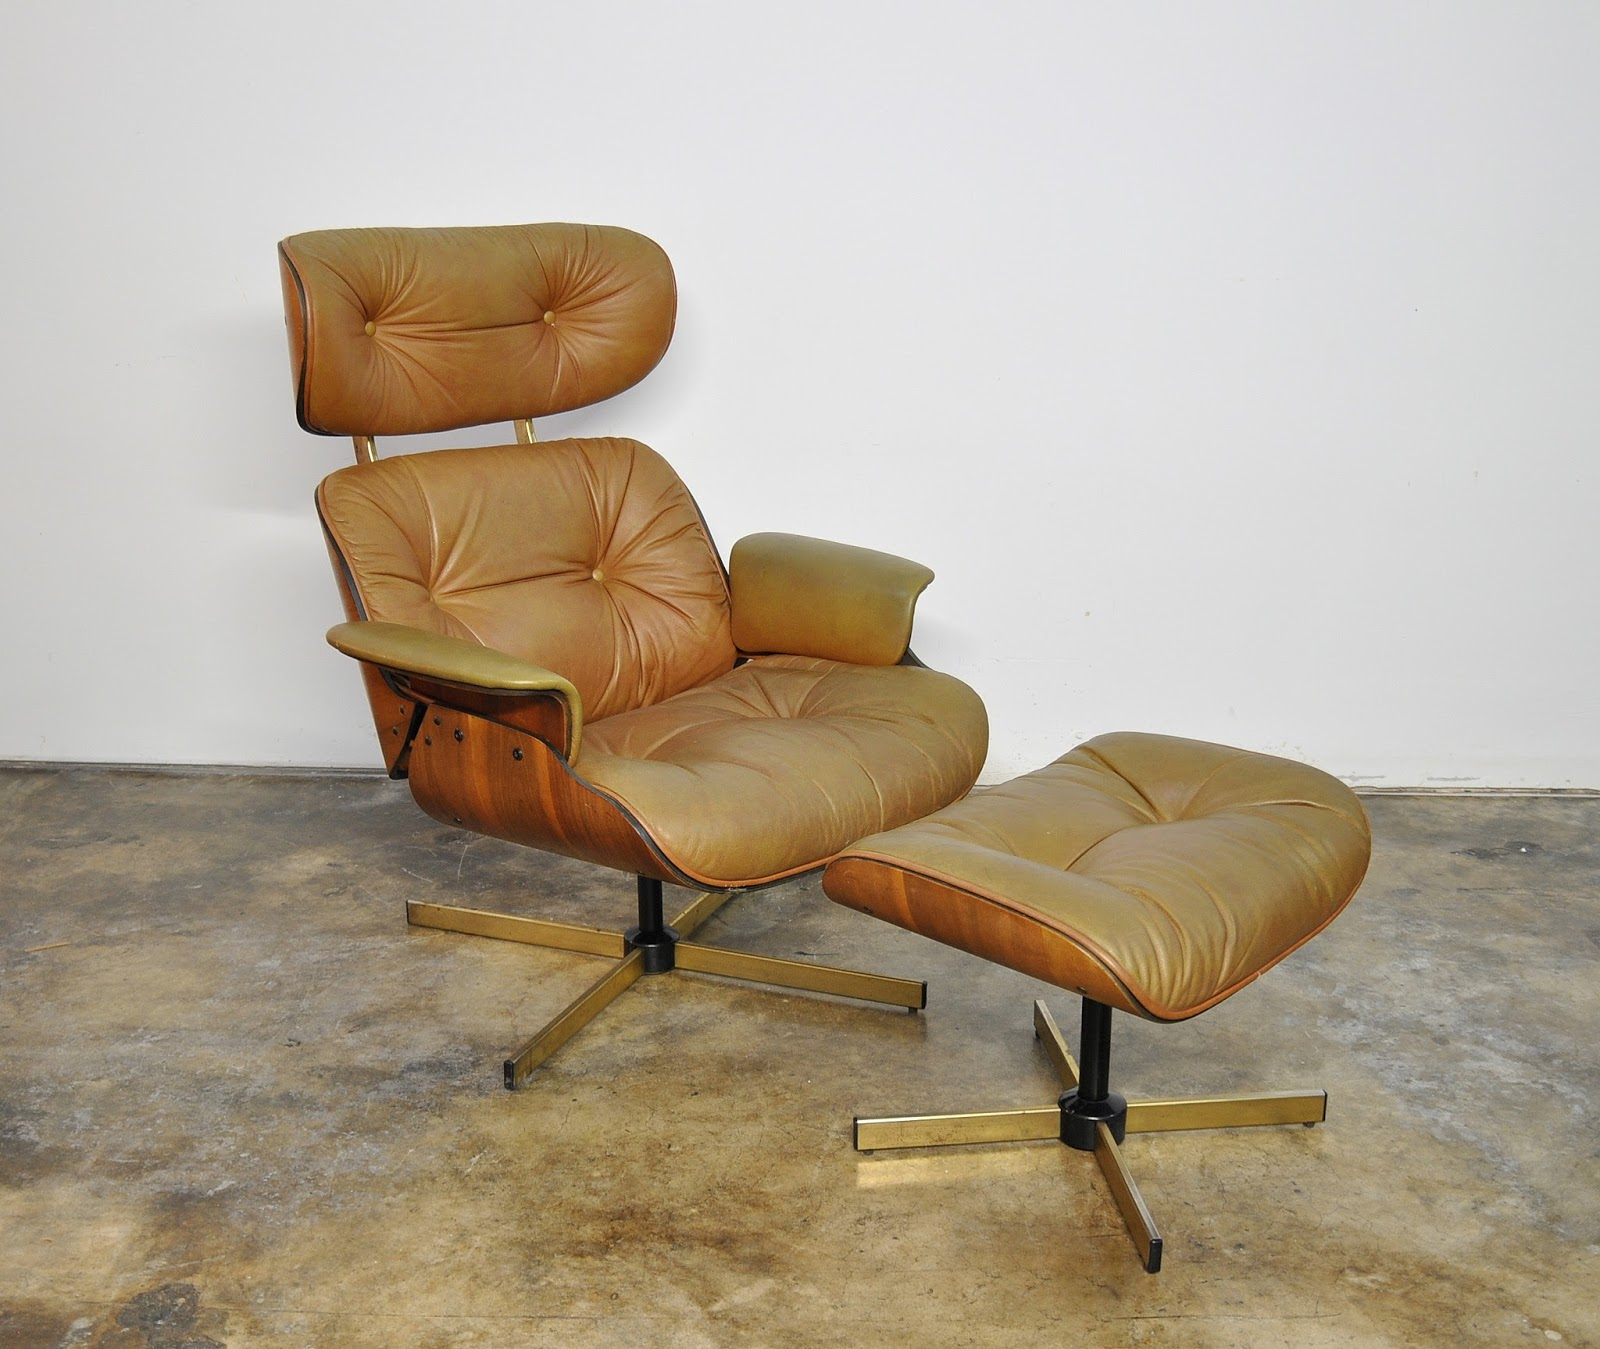 Eames Lounge Select Modern: Frank Doerner Eames Style Leather Lounge